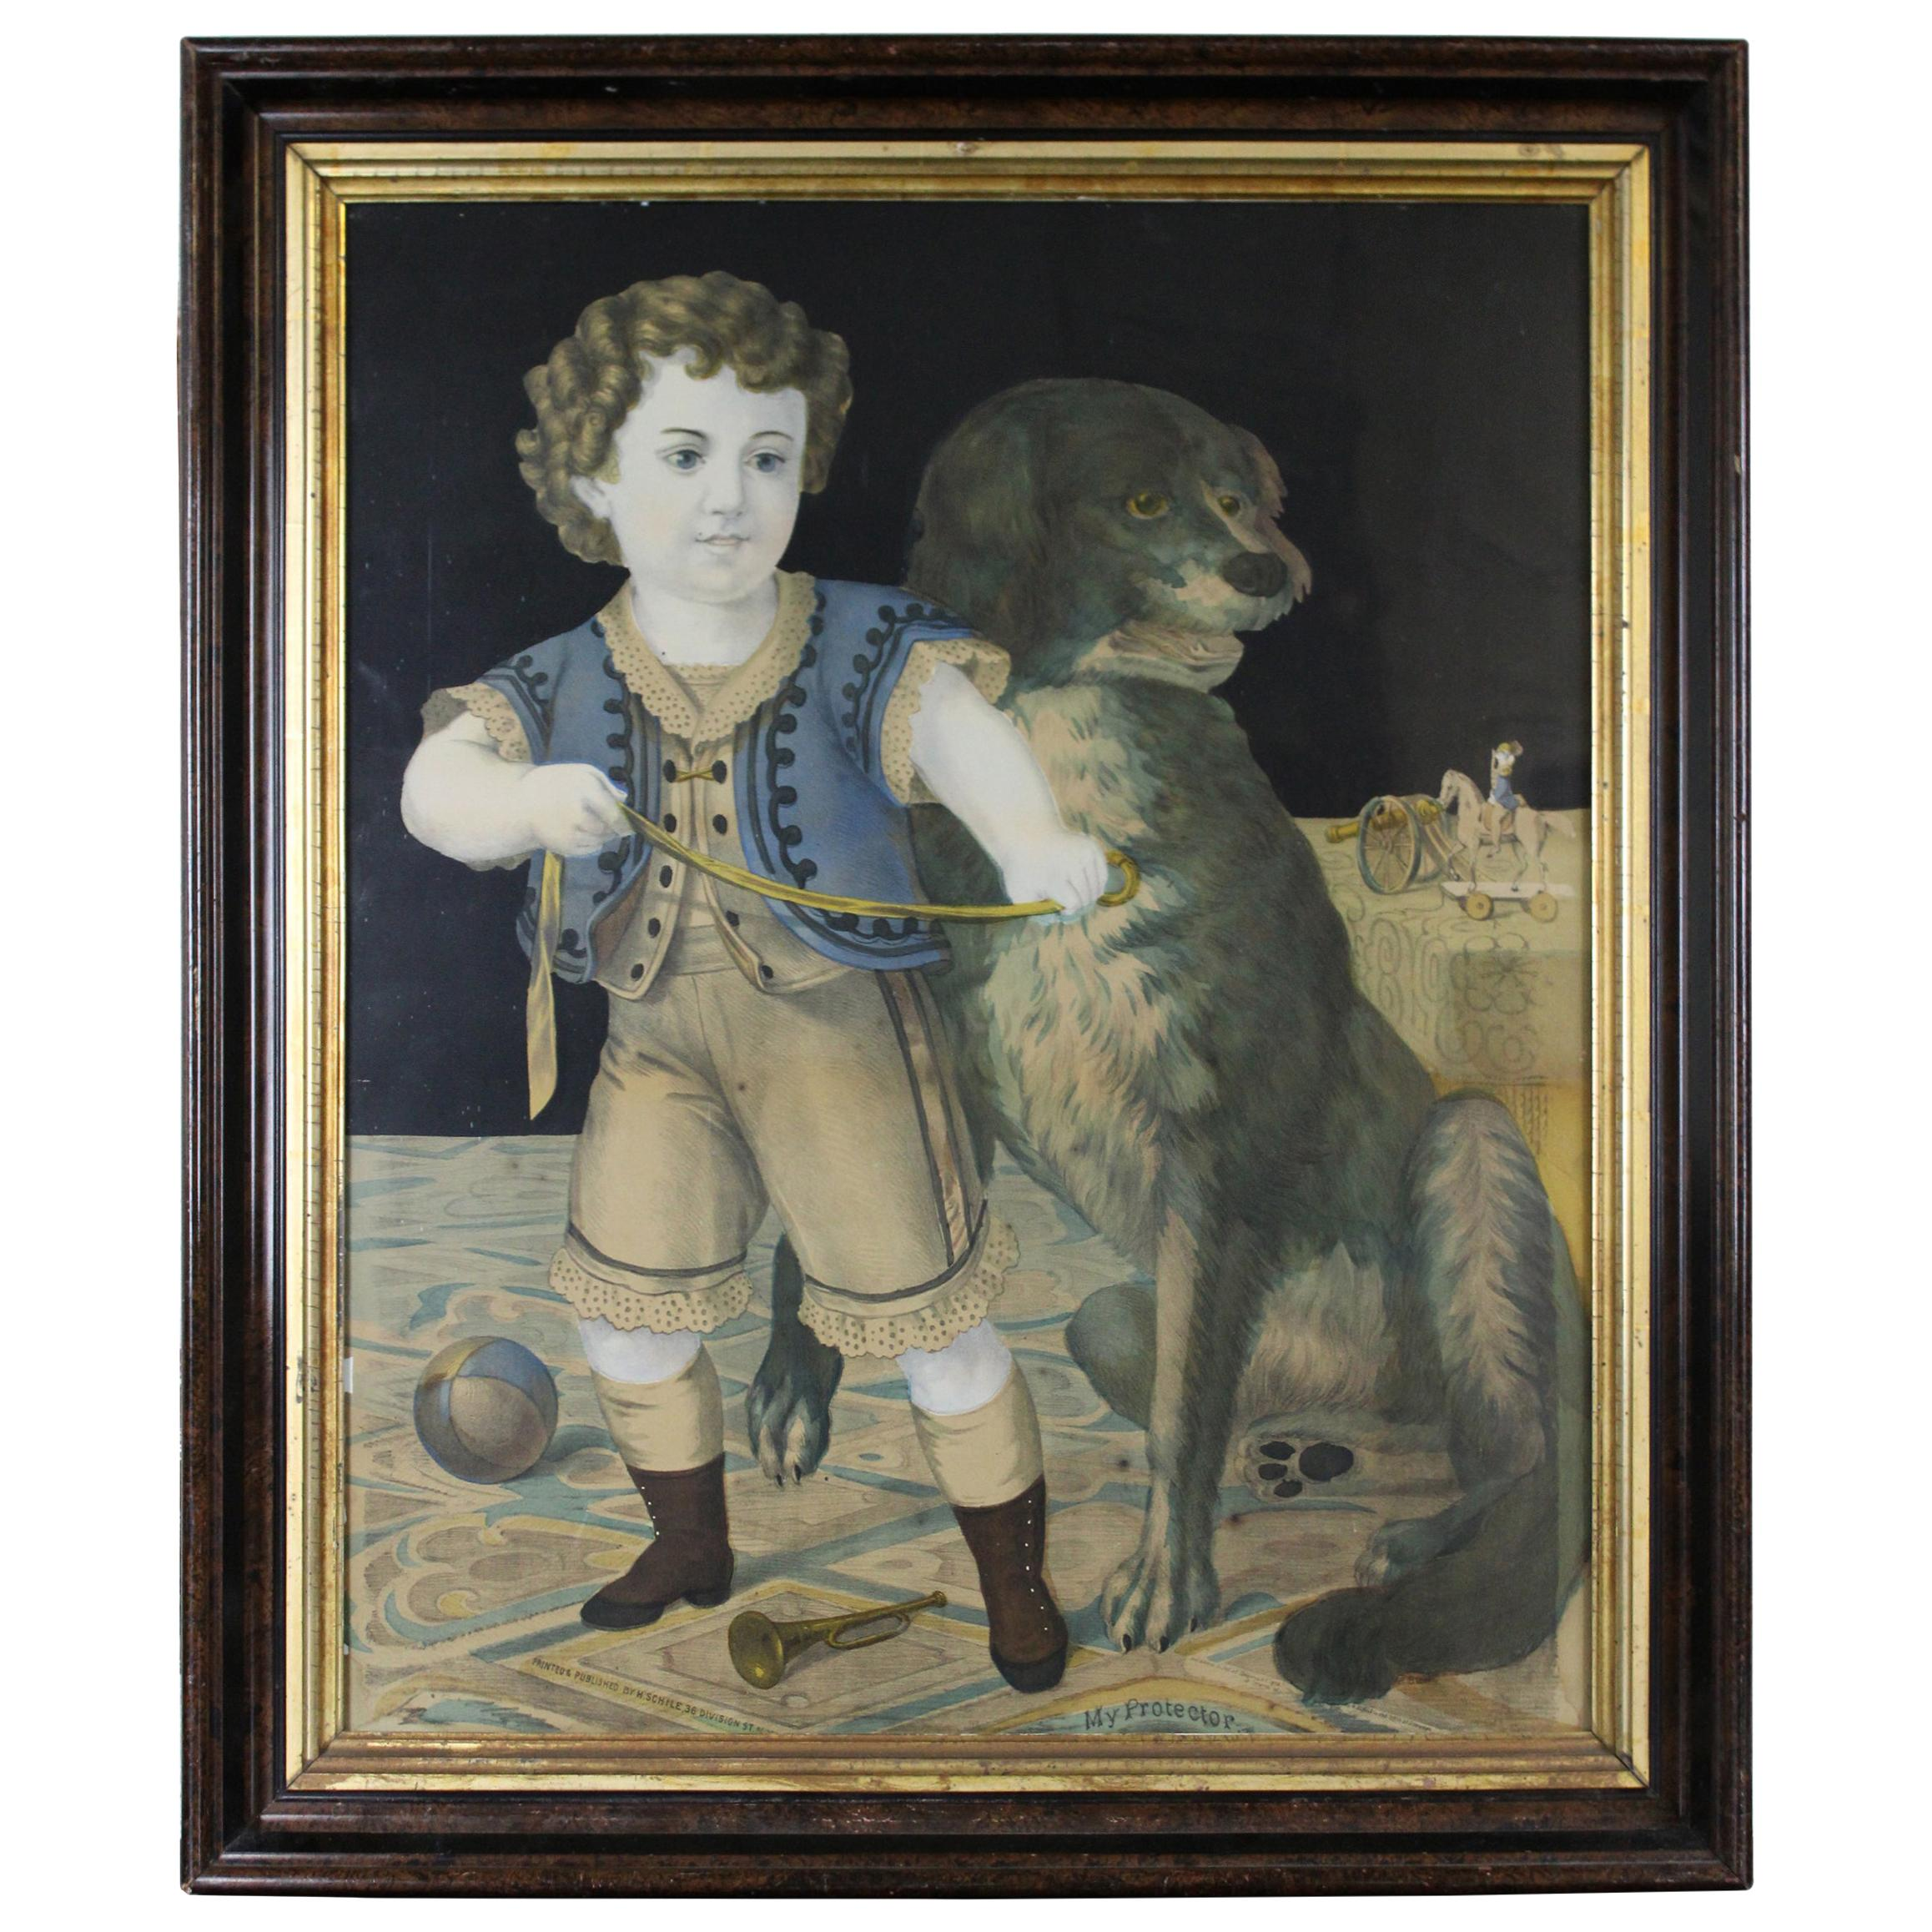 1874 Henry Schile My Protector Boy & Dog Colored Lithograph Framed Antique Print